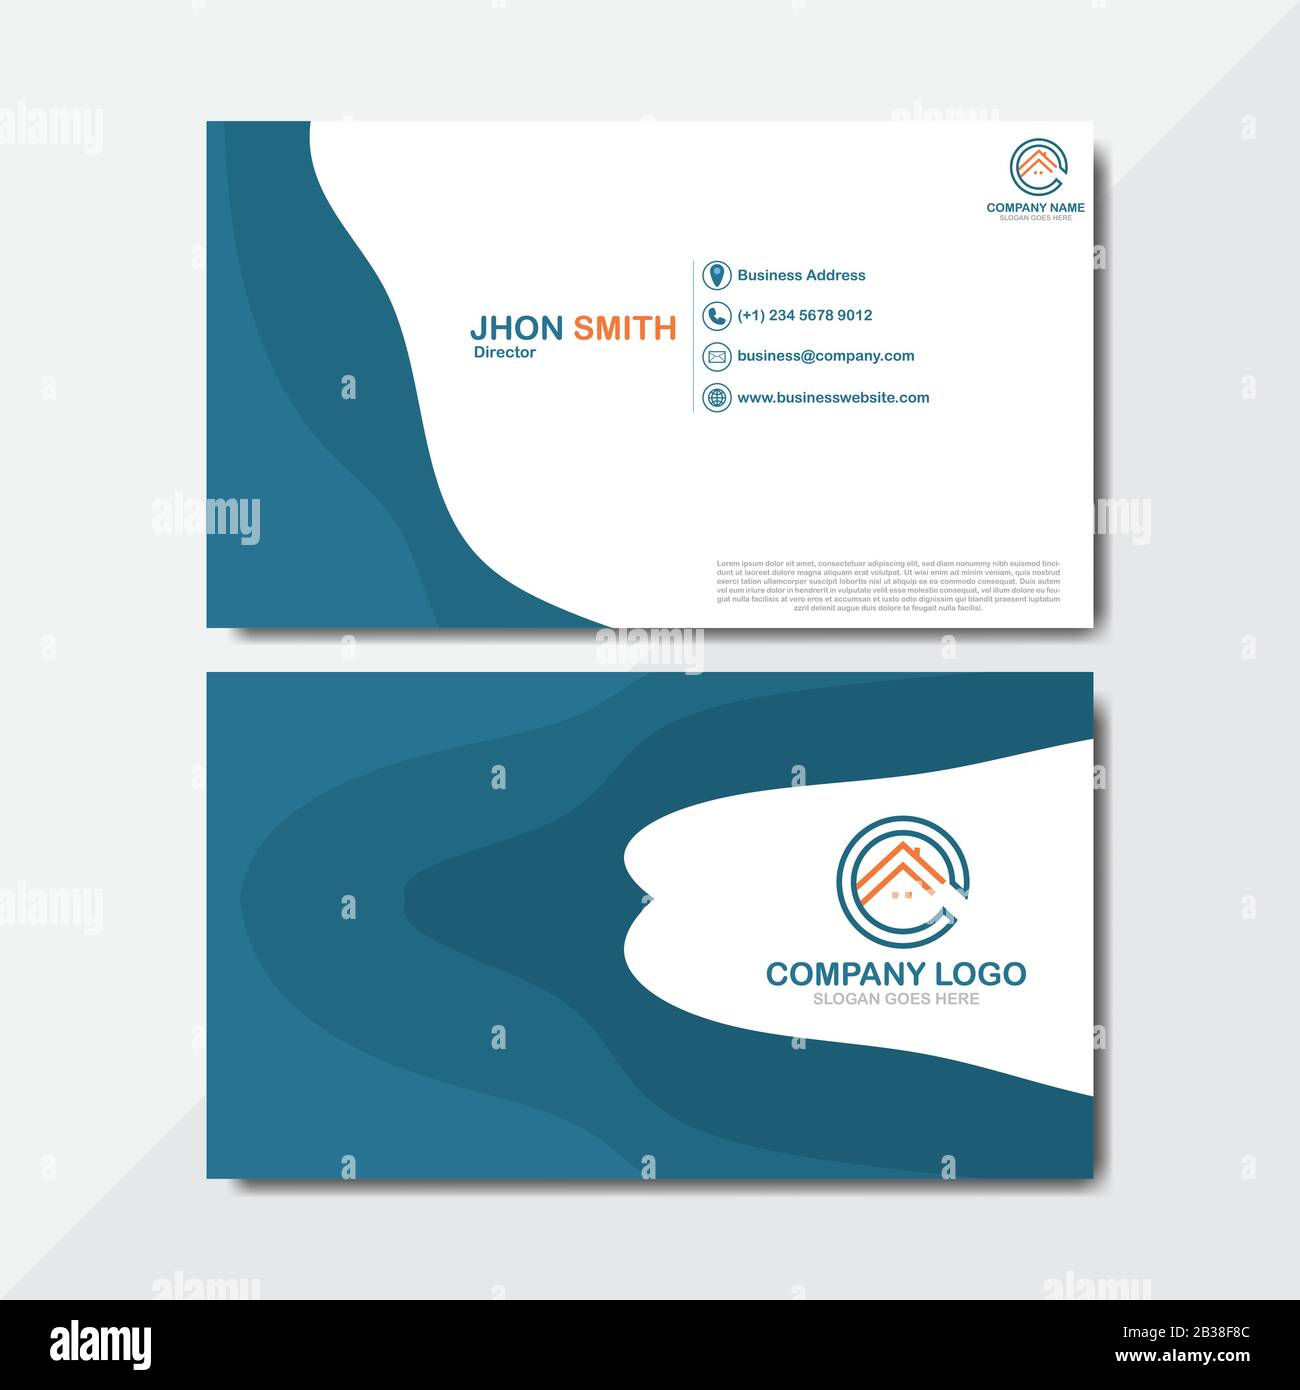 Double Sided Business Card Template Flat Design Vector Illustration Abstract Modern Business Card Template Design Name Card Stock Vector Image Art Alamy